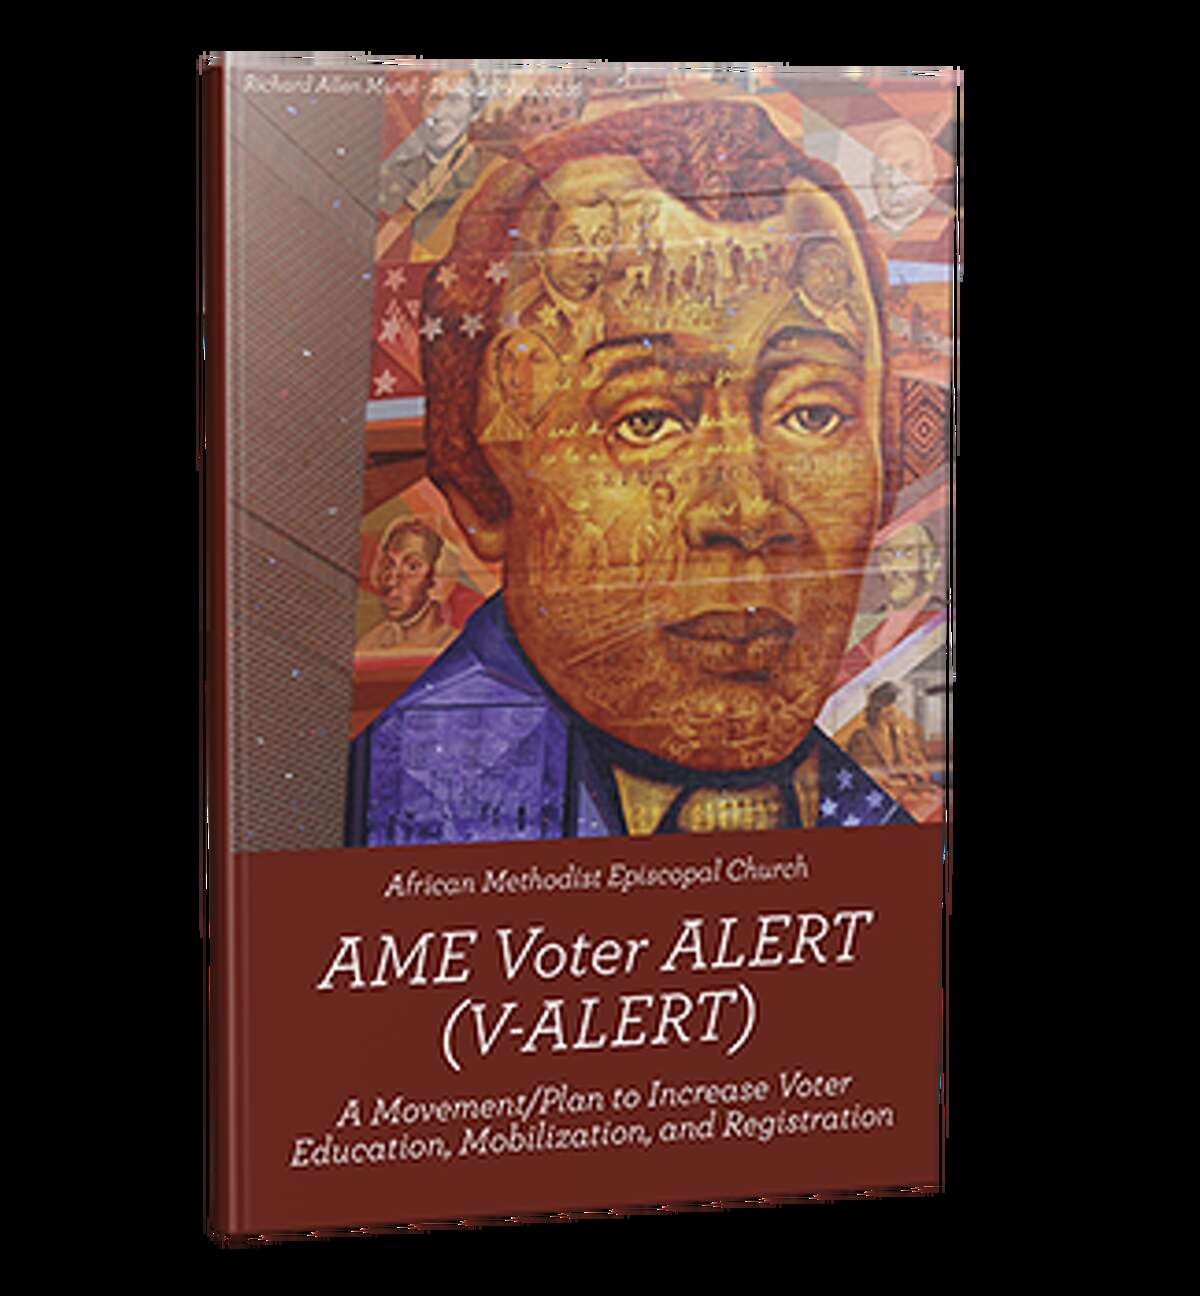 Bishop Richard Allen graces the cover of the AME churches' get out the vote toolkit. He founded America's first Black denomination in 1794. Born a slave, he taught himself to read and write, became a popular and charismatic pastor and bought his freedom long before the Civil War.